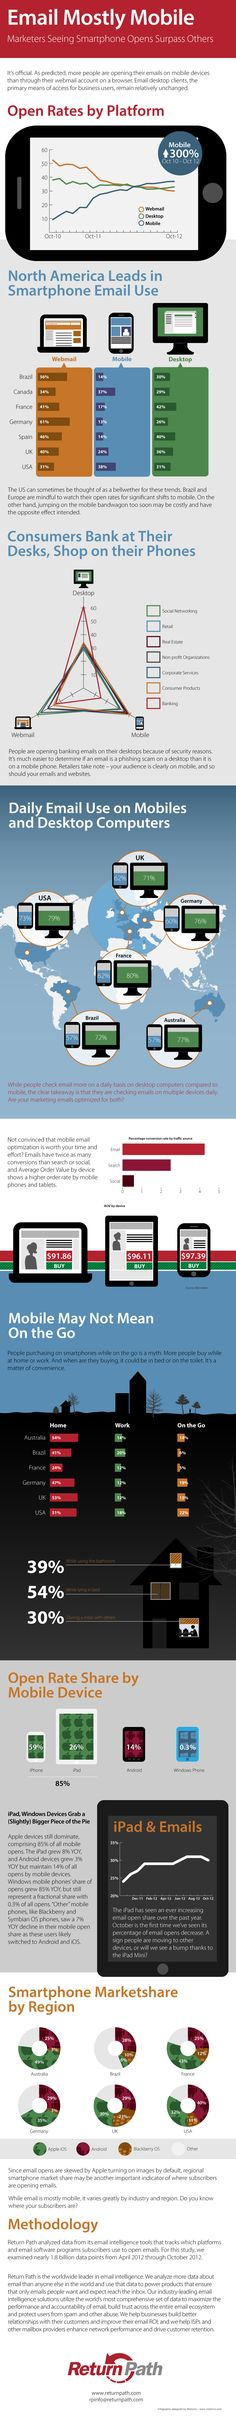 Email marketing infographic shows that open rates on mobile devices are surpassing desktop. See more email marketing stats in this infographic Inbound Marketing, Online Marketing, Social Media Marketing, Marketing Communications, Marketing Strategies, Marketing Ideas, Social Networks, Marketing Mobile, Marketing Digital